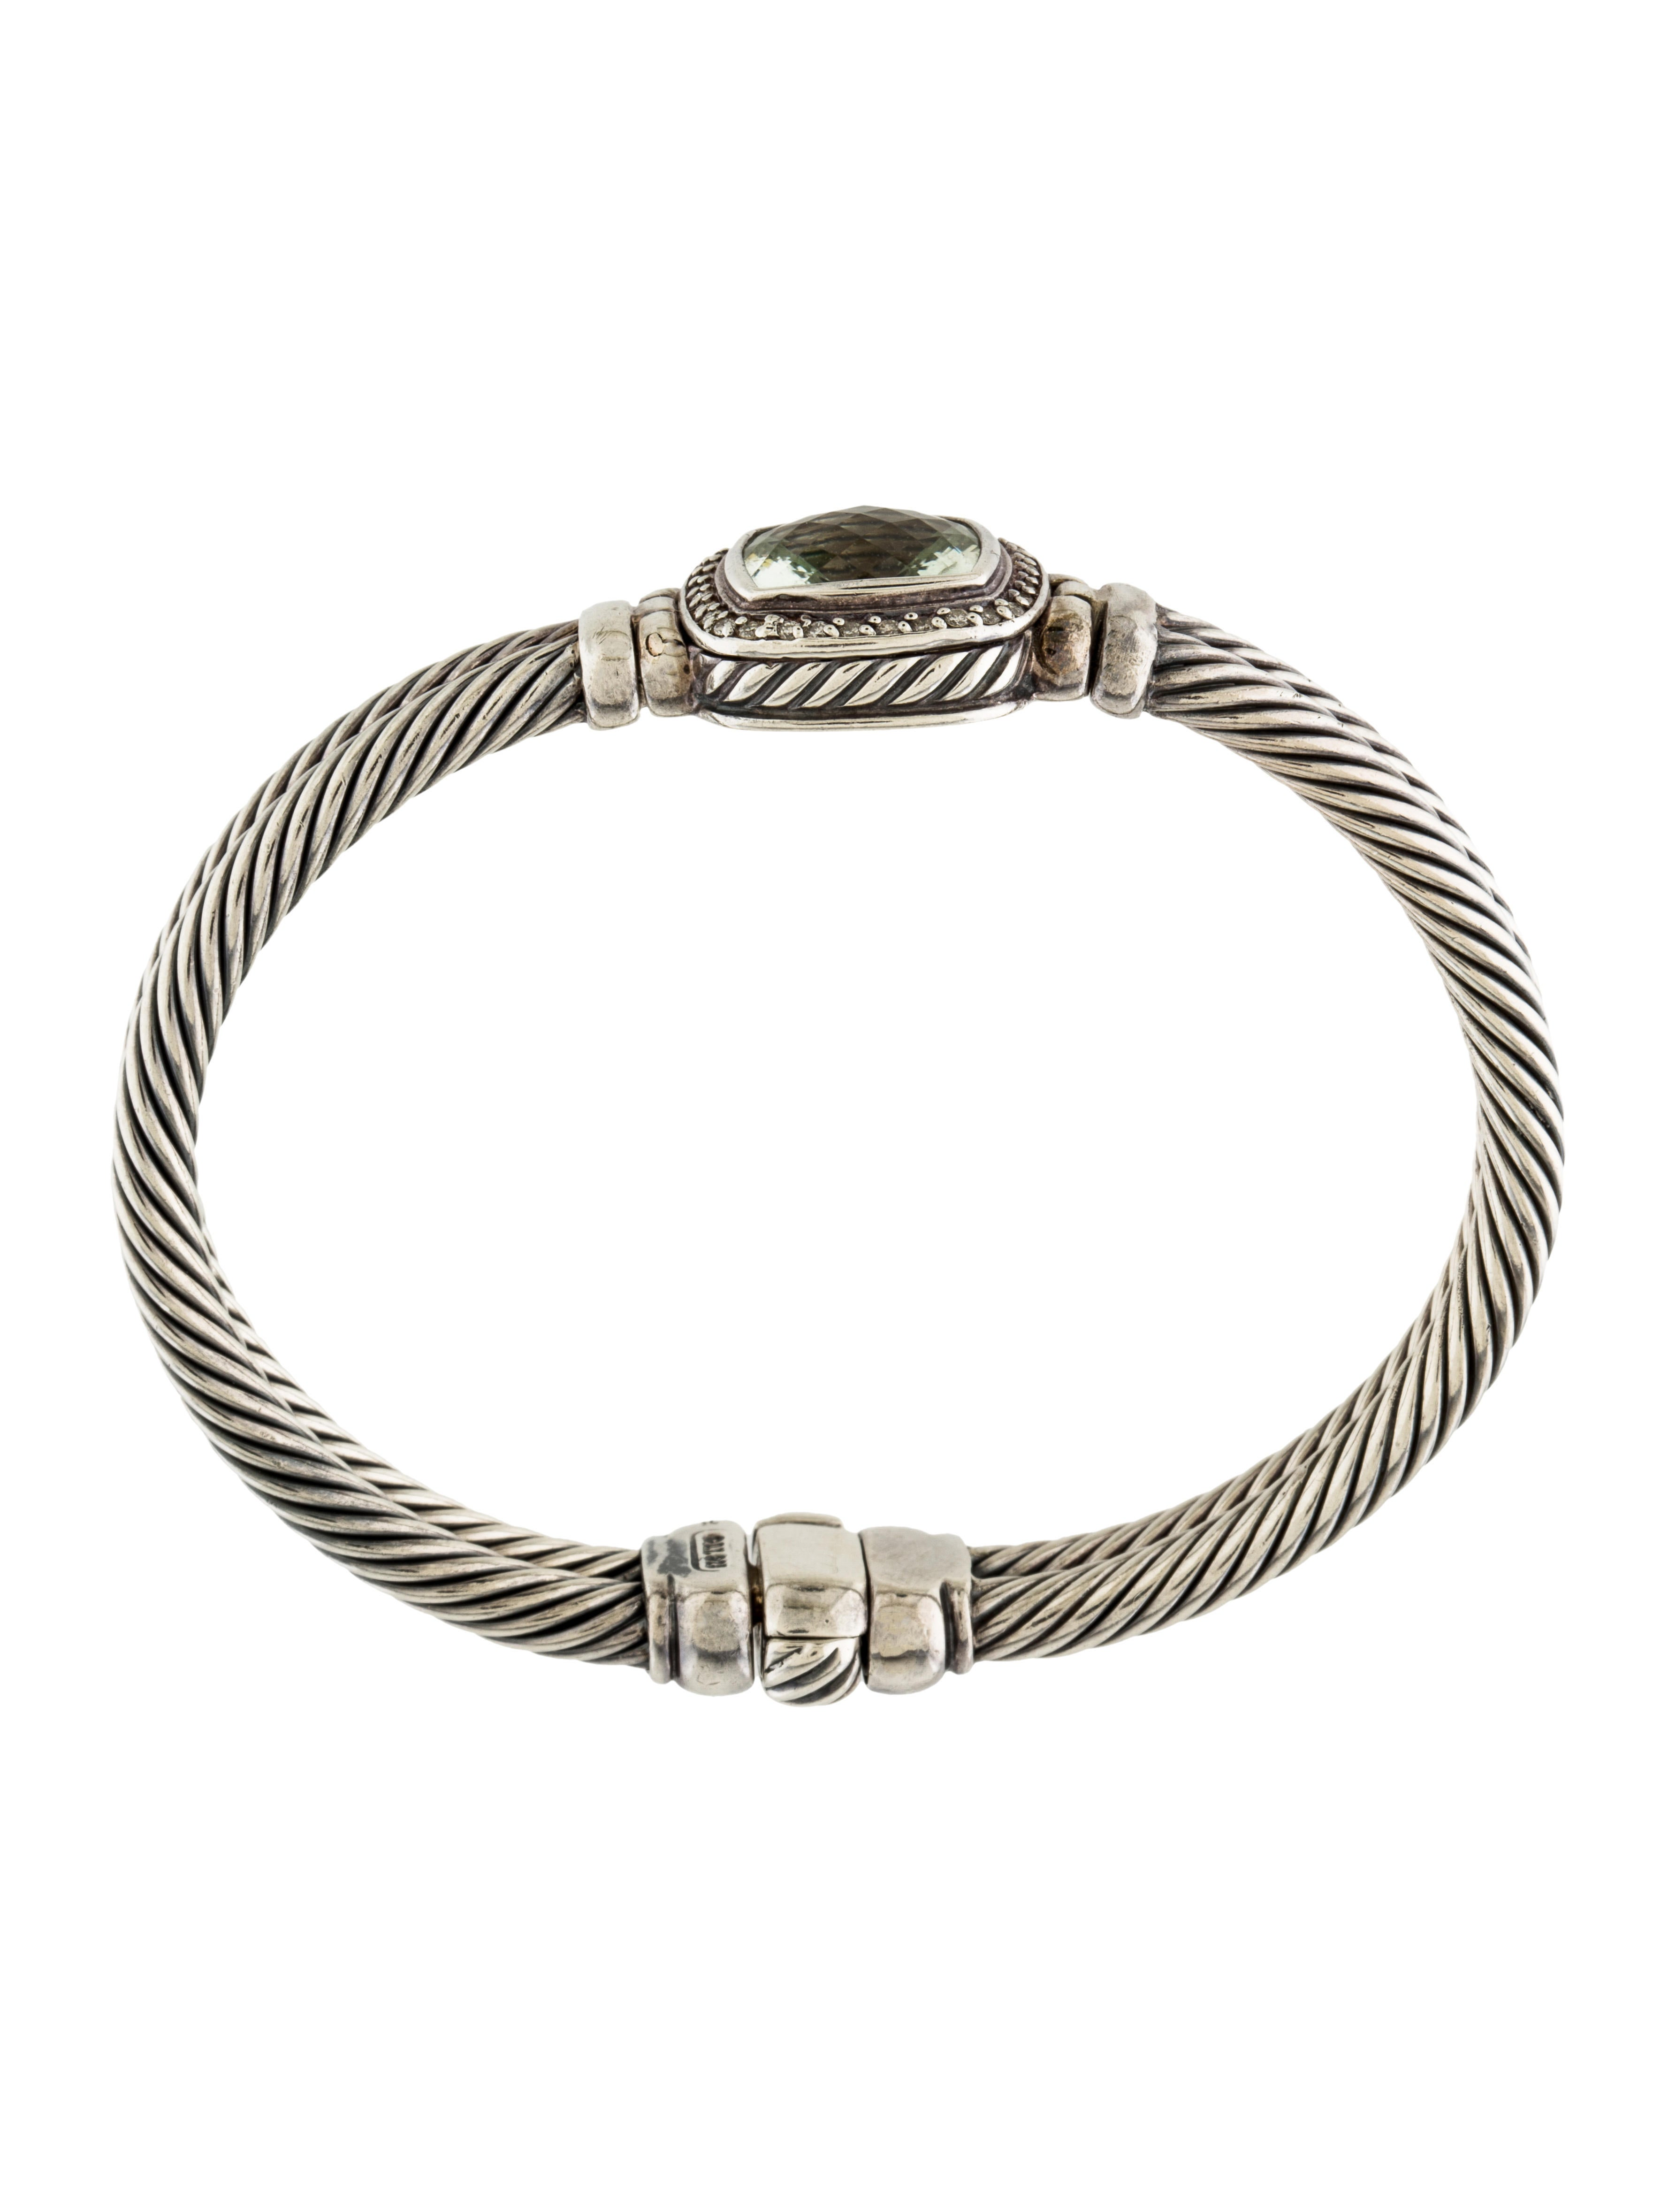 David yurman prasiolite diamond albion cable bracelet for David yurman inspired bracelet cable